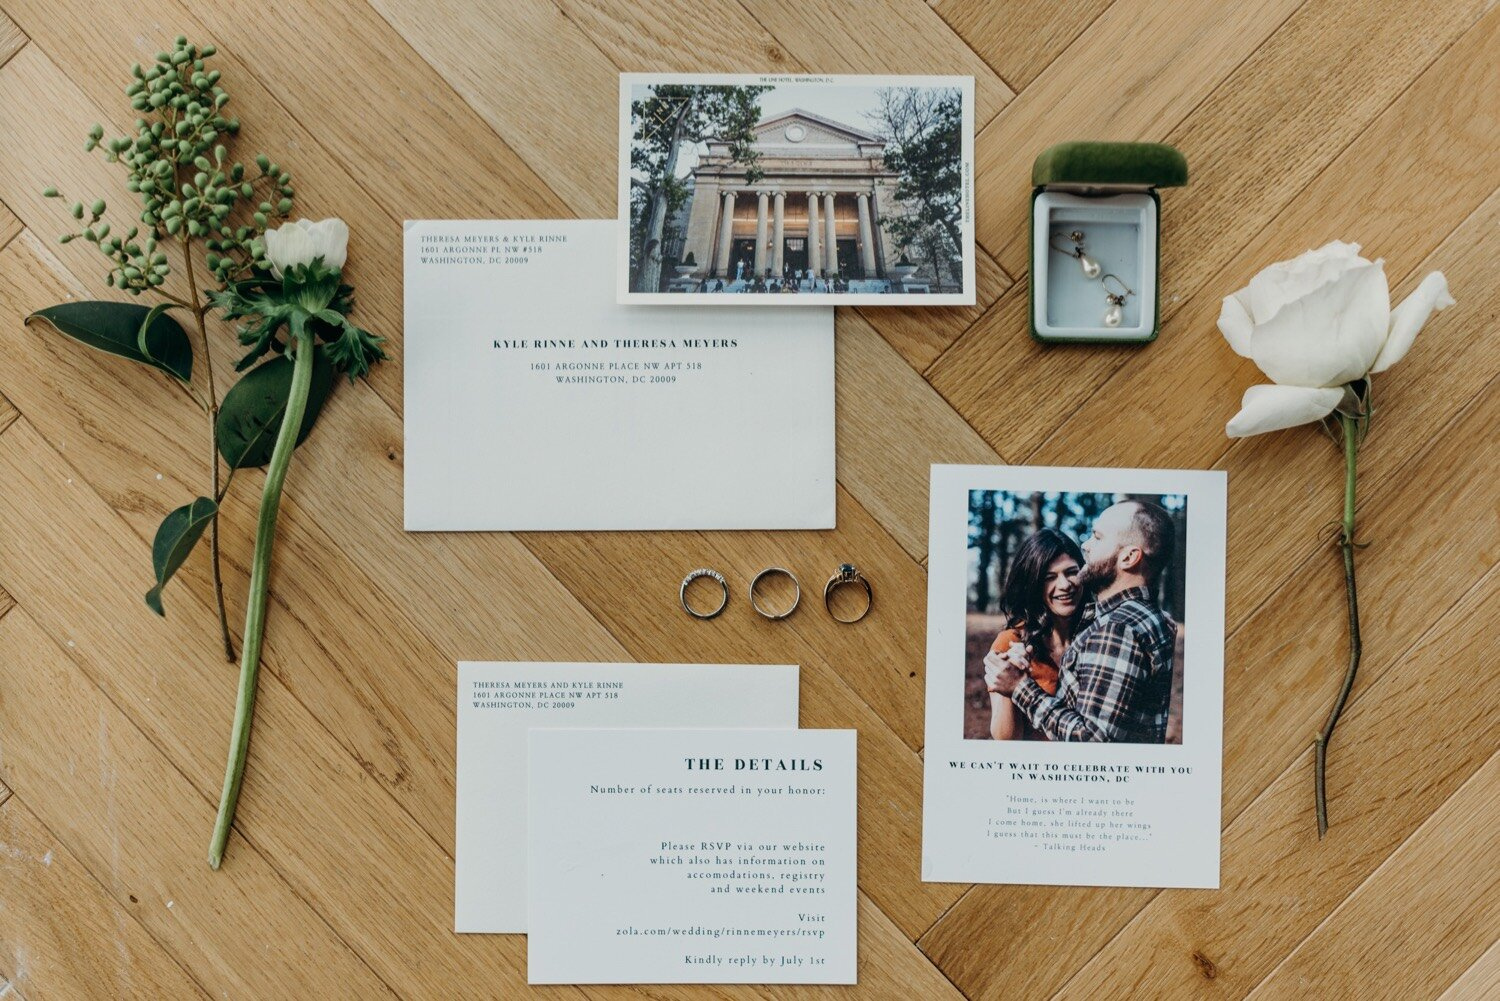 01_photos_invitation_line_she-loves-me-flower_dc_wedding_hotel.jpg